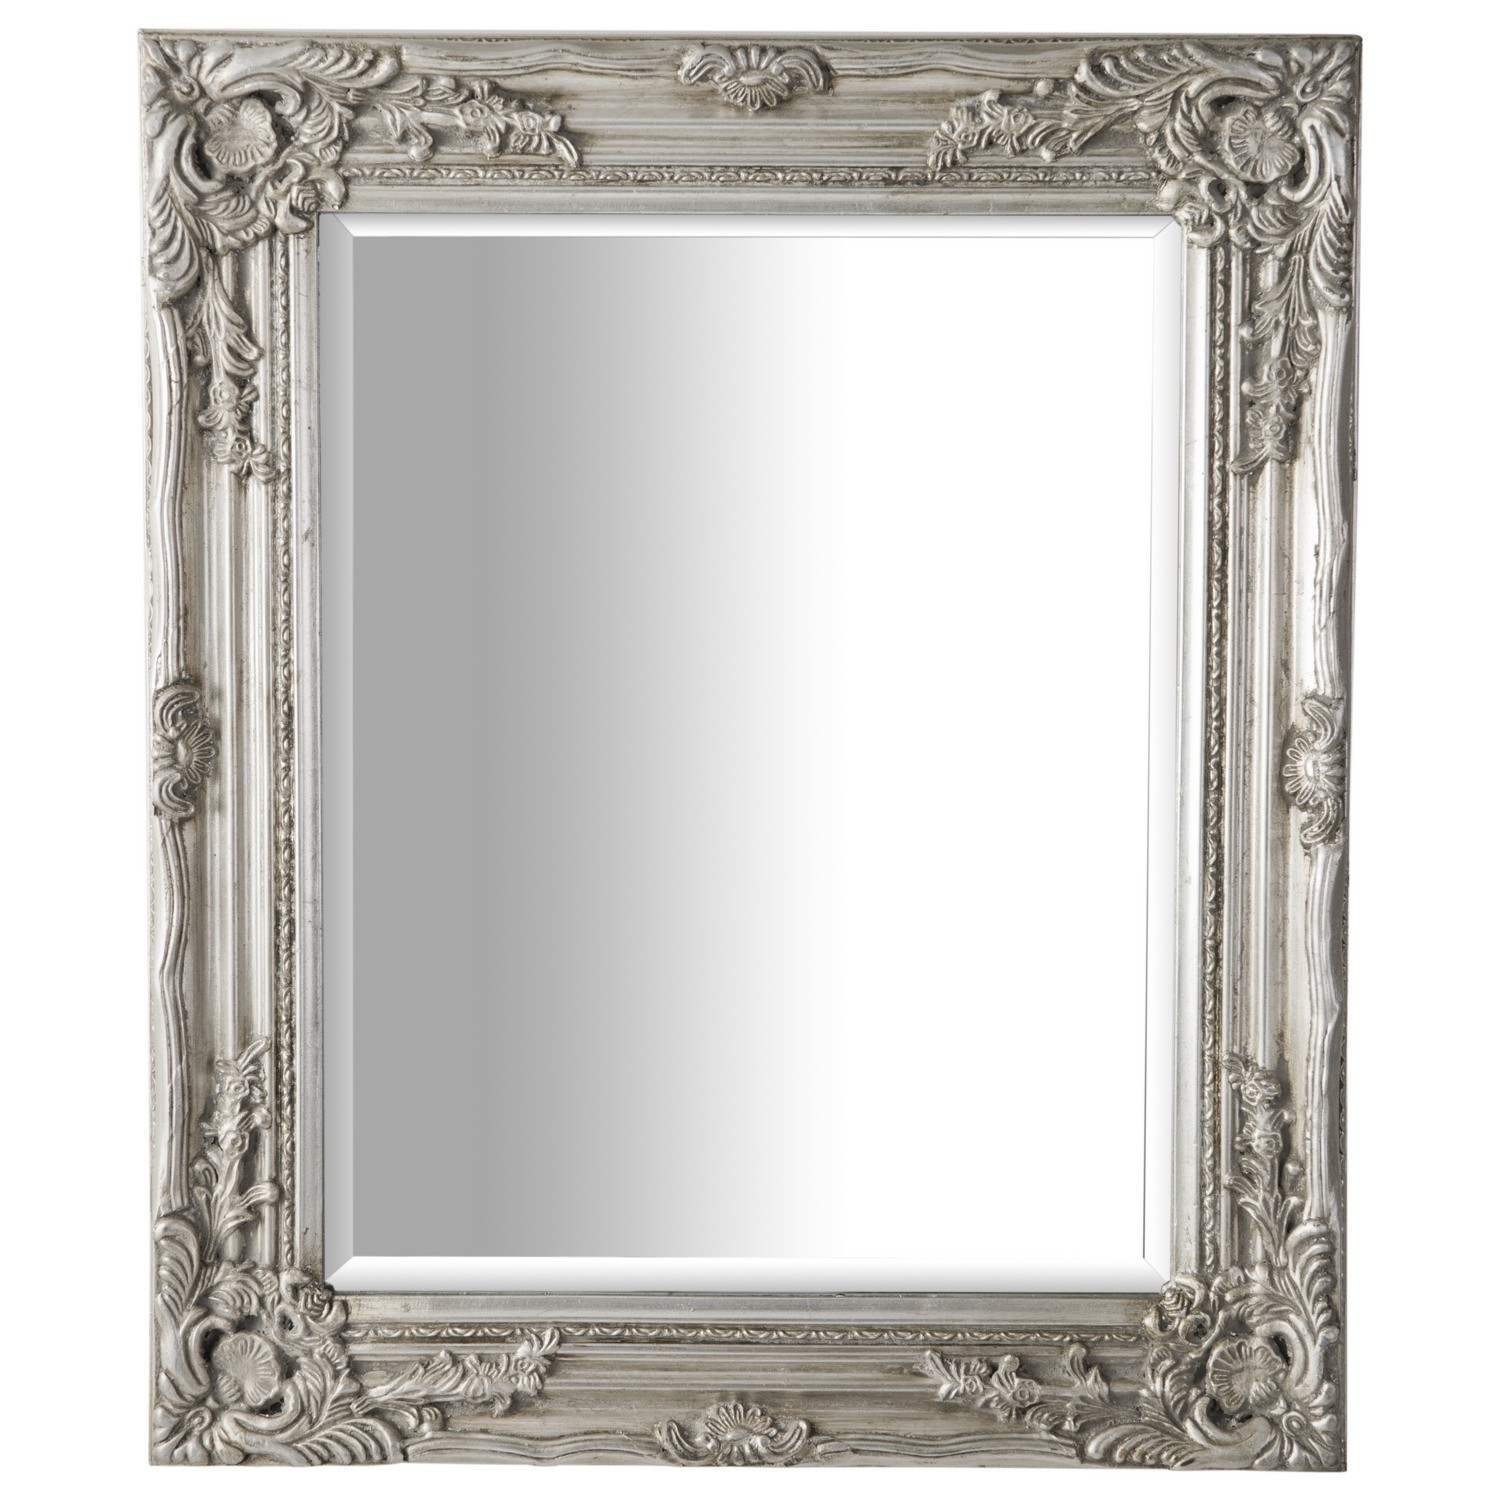 Antique Ornate Mirror Silver With Silver Ornate Framed Mirror (Image 2 of 15)